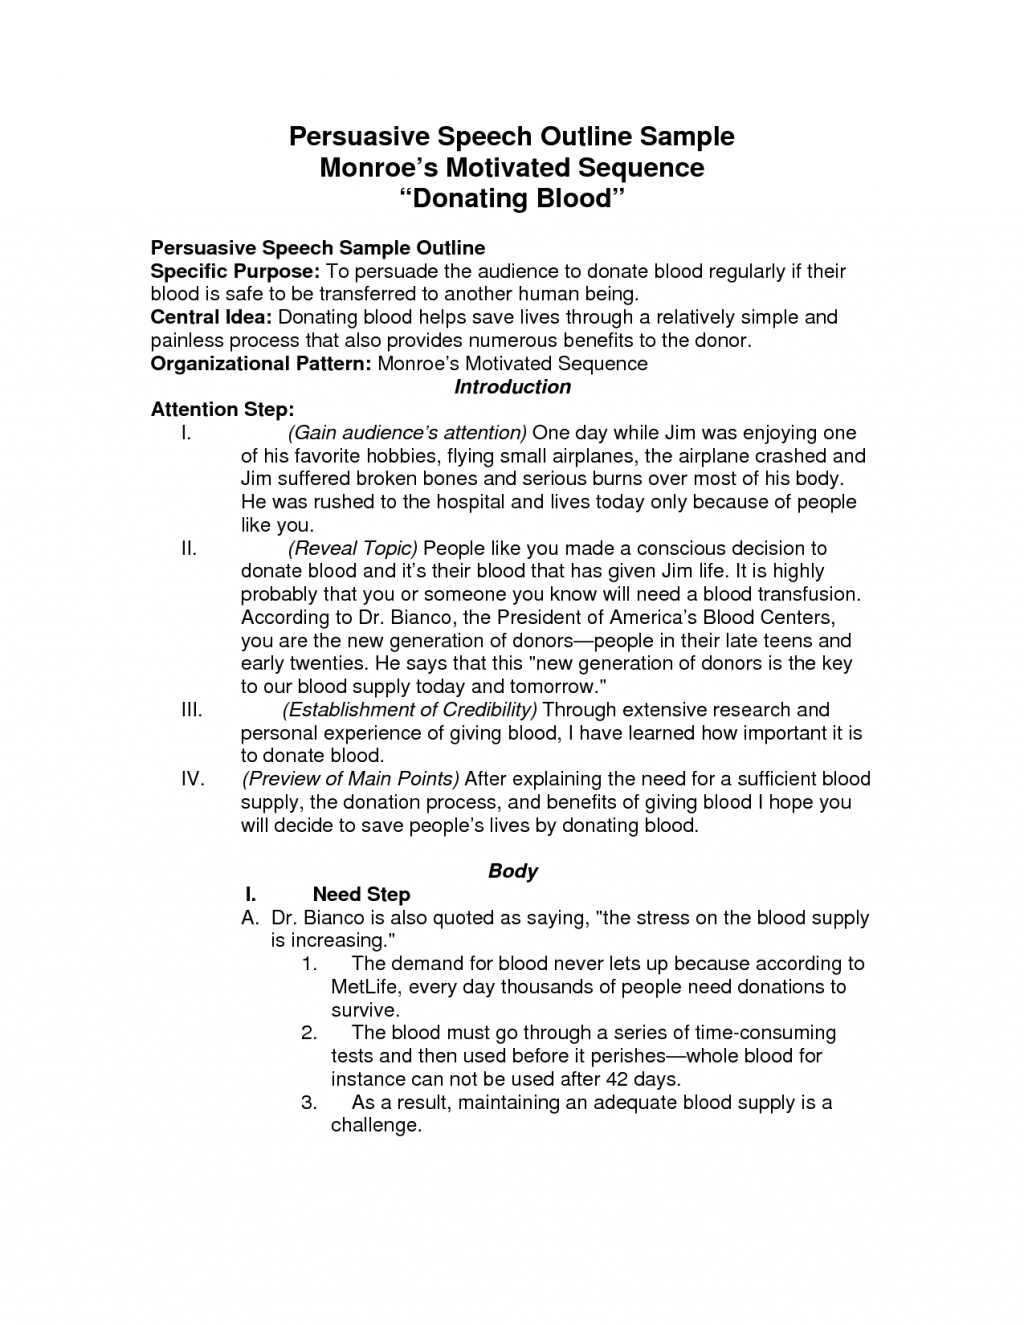 012 Persuasive Speech Outline Template 3tgrxdkt Essay Example Awesome Free On Texting While Driving Examples Large